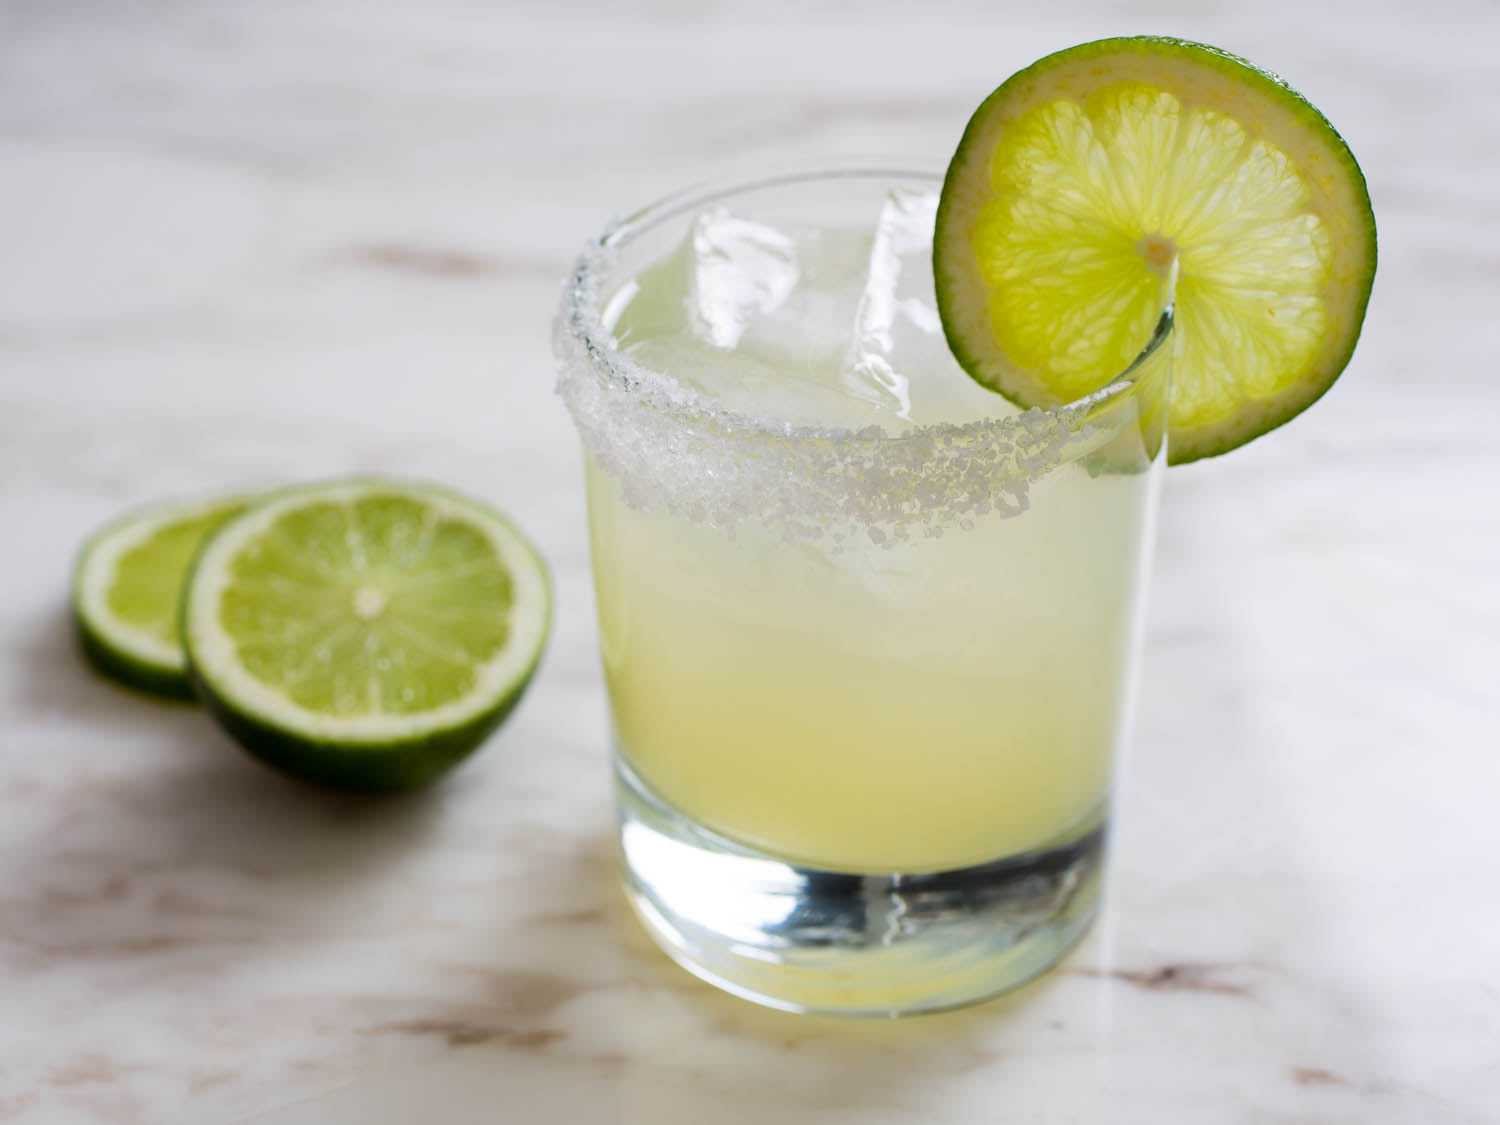 Image of a margarita cocktail